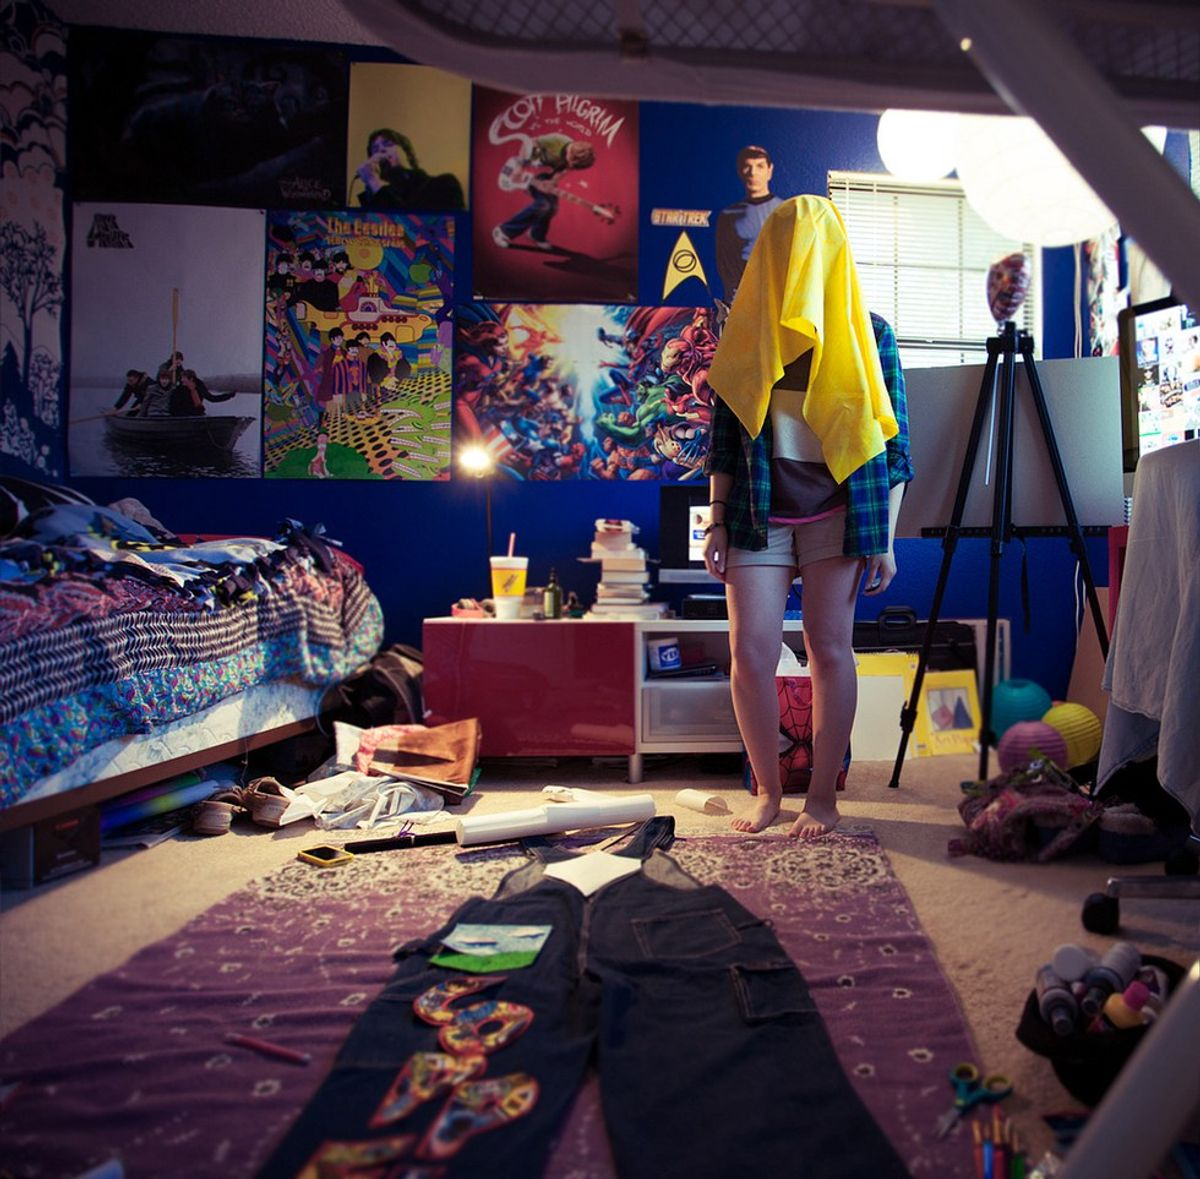 5 Thoughts While Cleaning Your Room